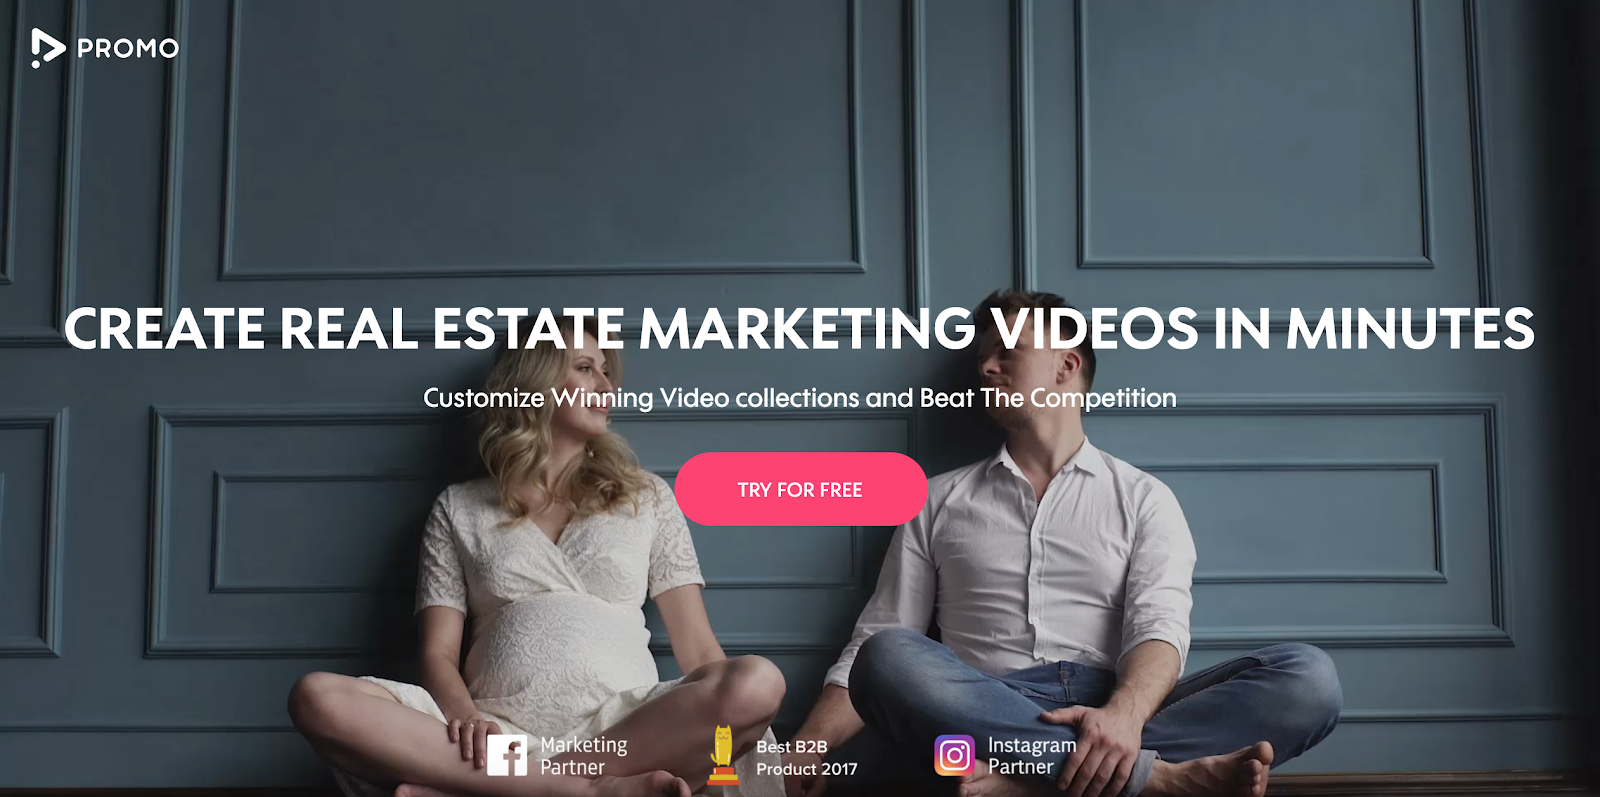 Promo Real Estate Marketing Videos | Real Estate Marketing Tools